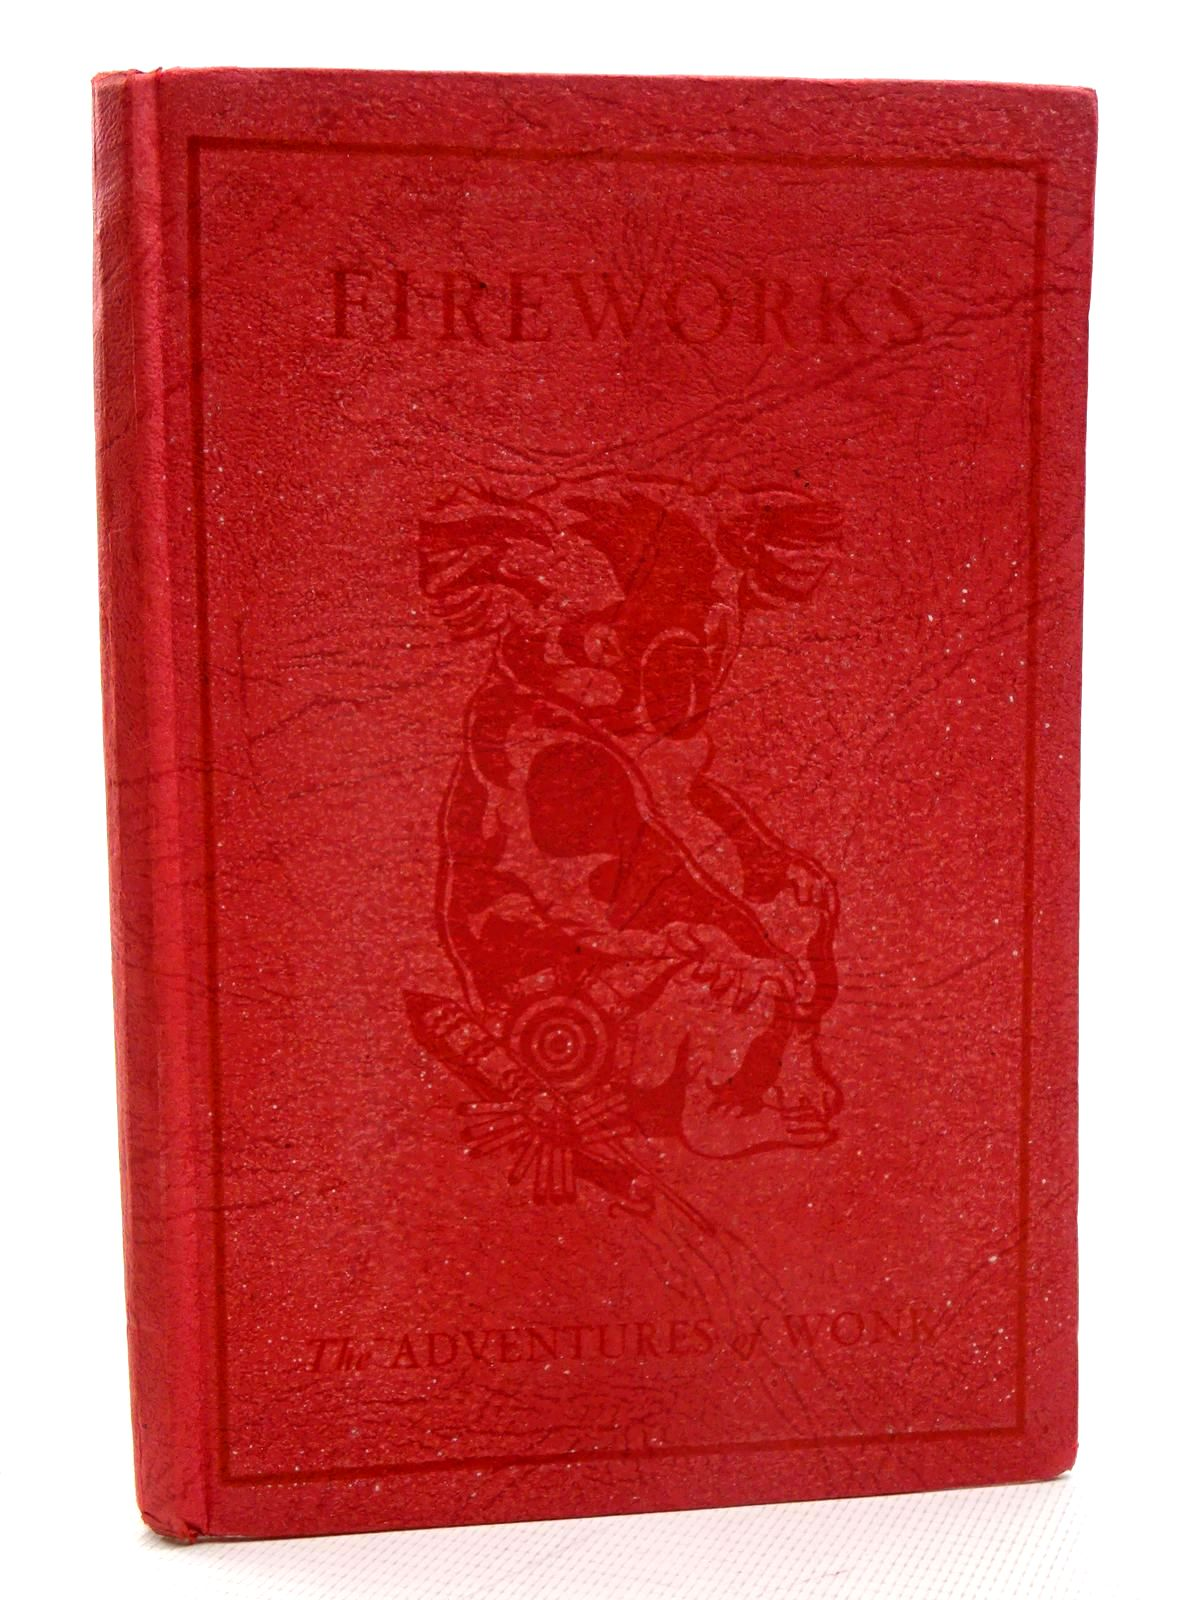 Photo of THE ADVENTURES OF WONK - FIREWORKS written by Levy, Muriel illustrated by Kiddell-Monroe, Joan published by Wills & Hepworth Ltd. (STOCK CODE: 1317398)  for sale by Stella & Rose's Books